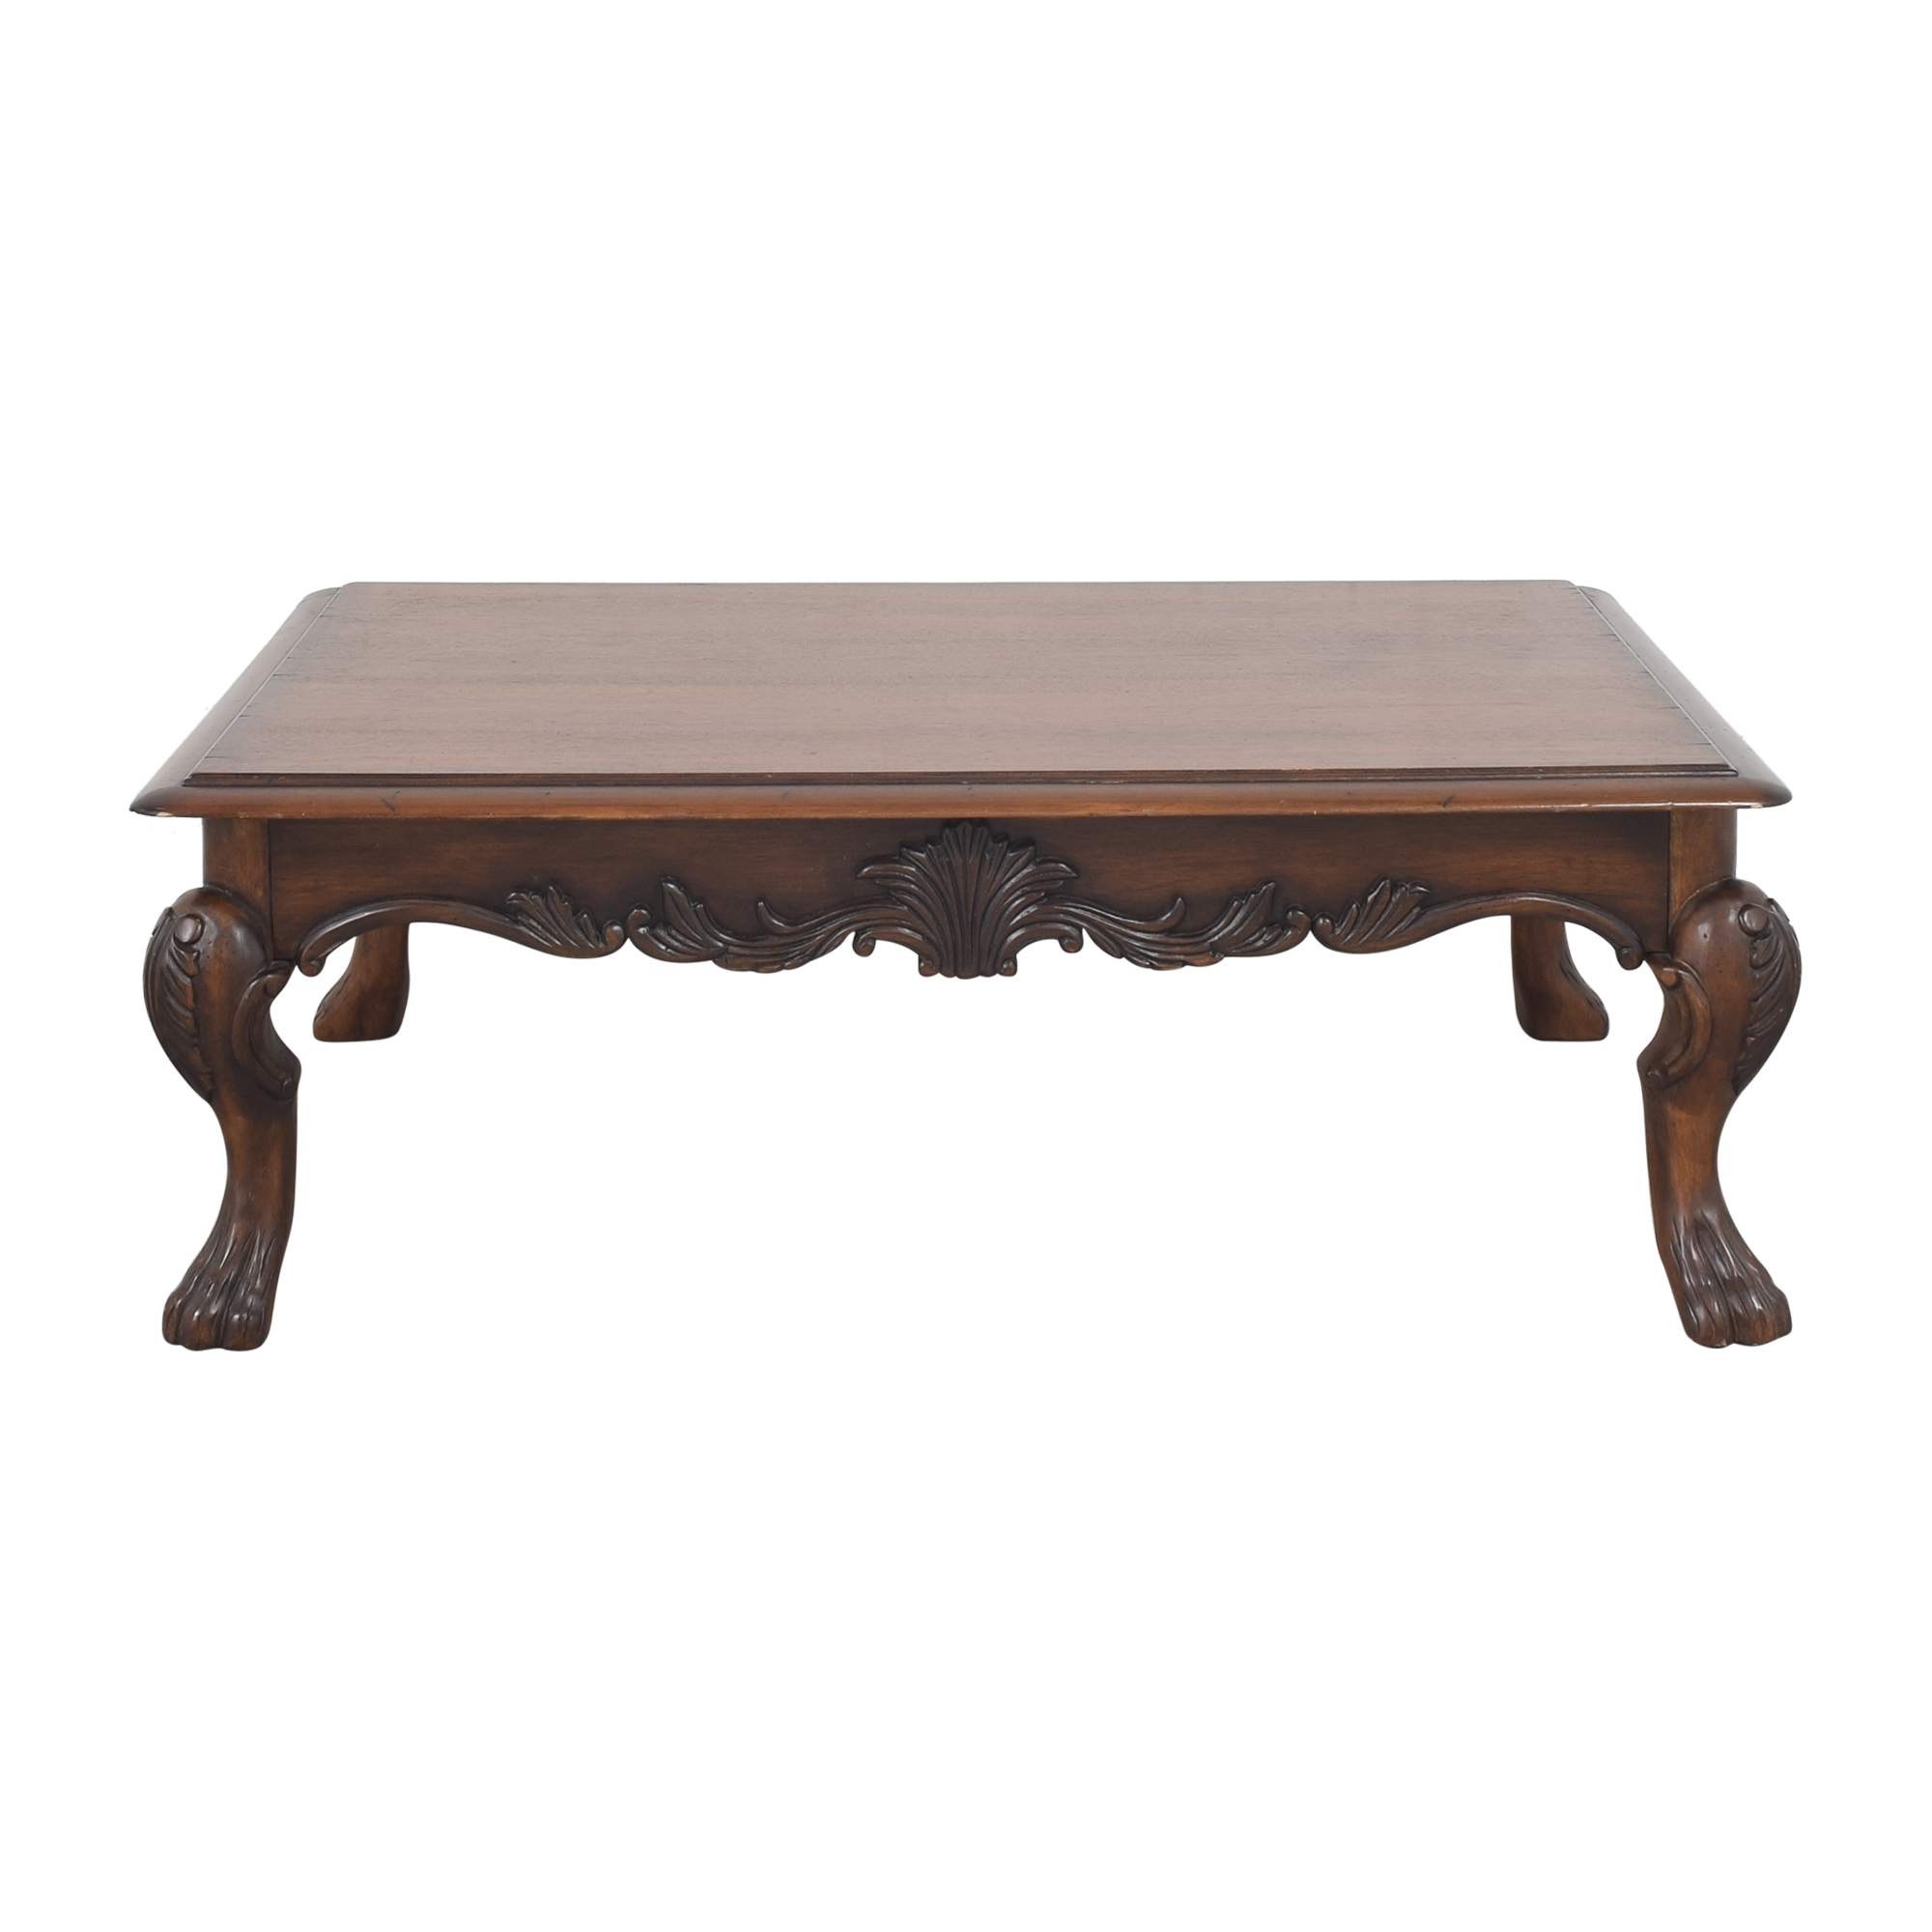 Ethan Allen Ethan Allen Cabriole Coffee Table price